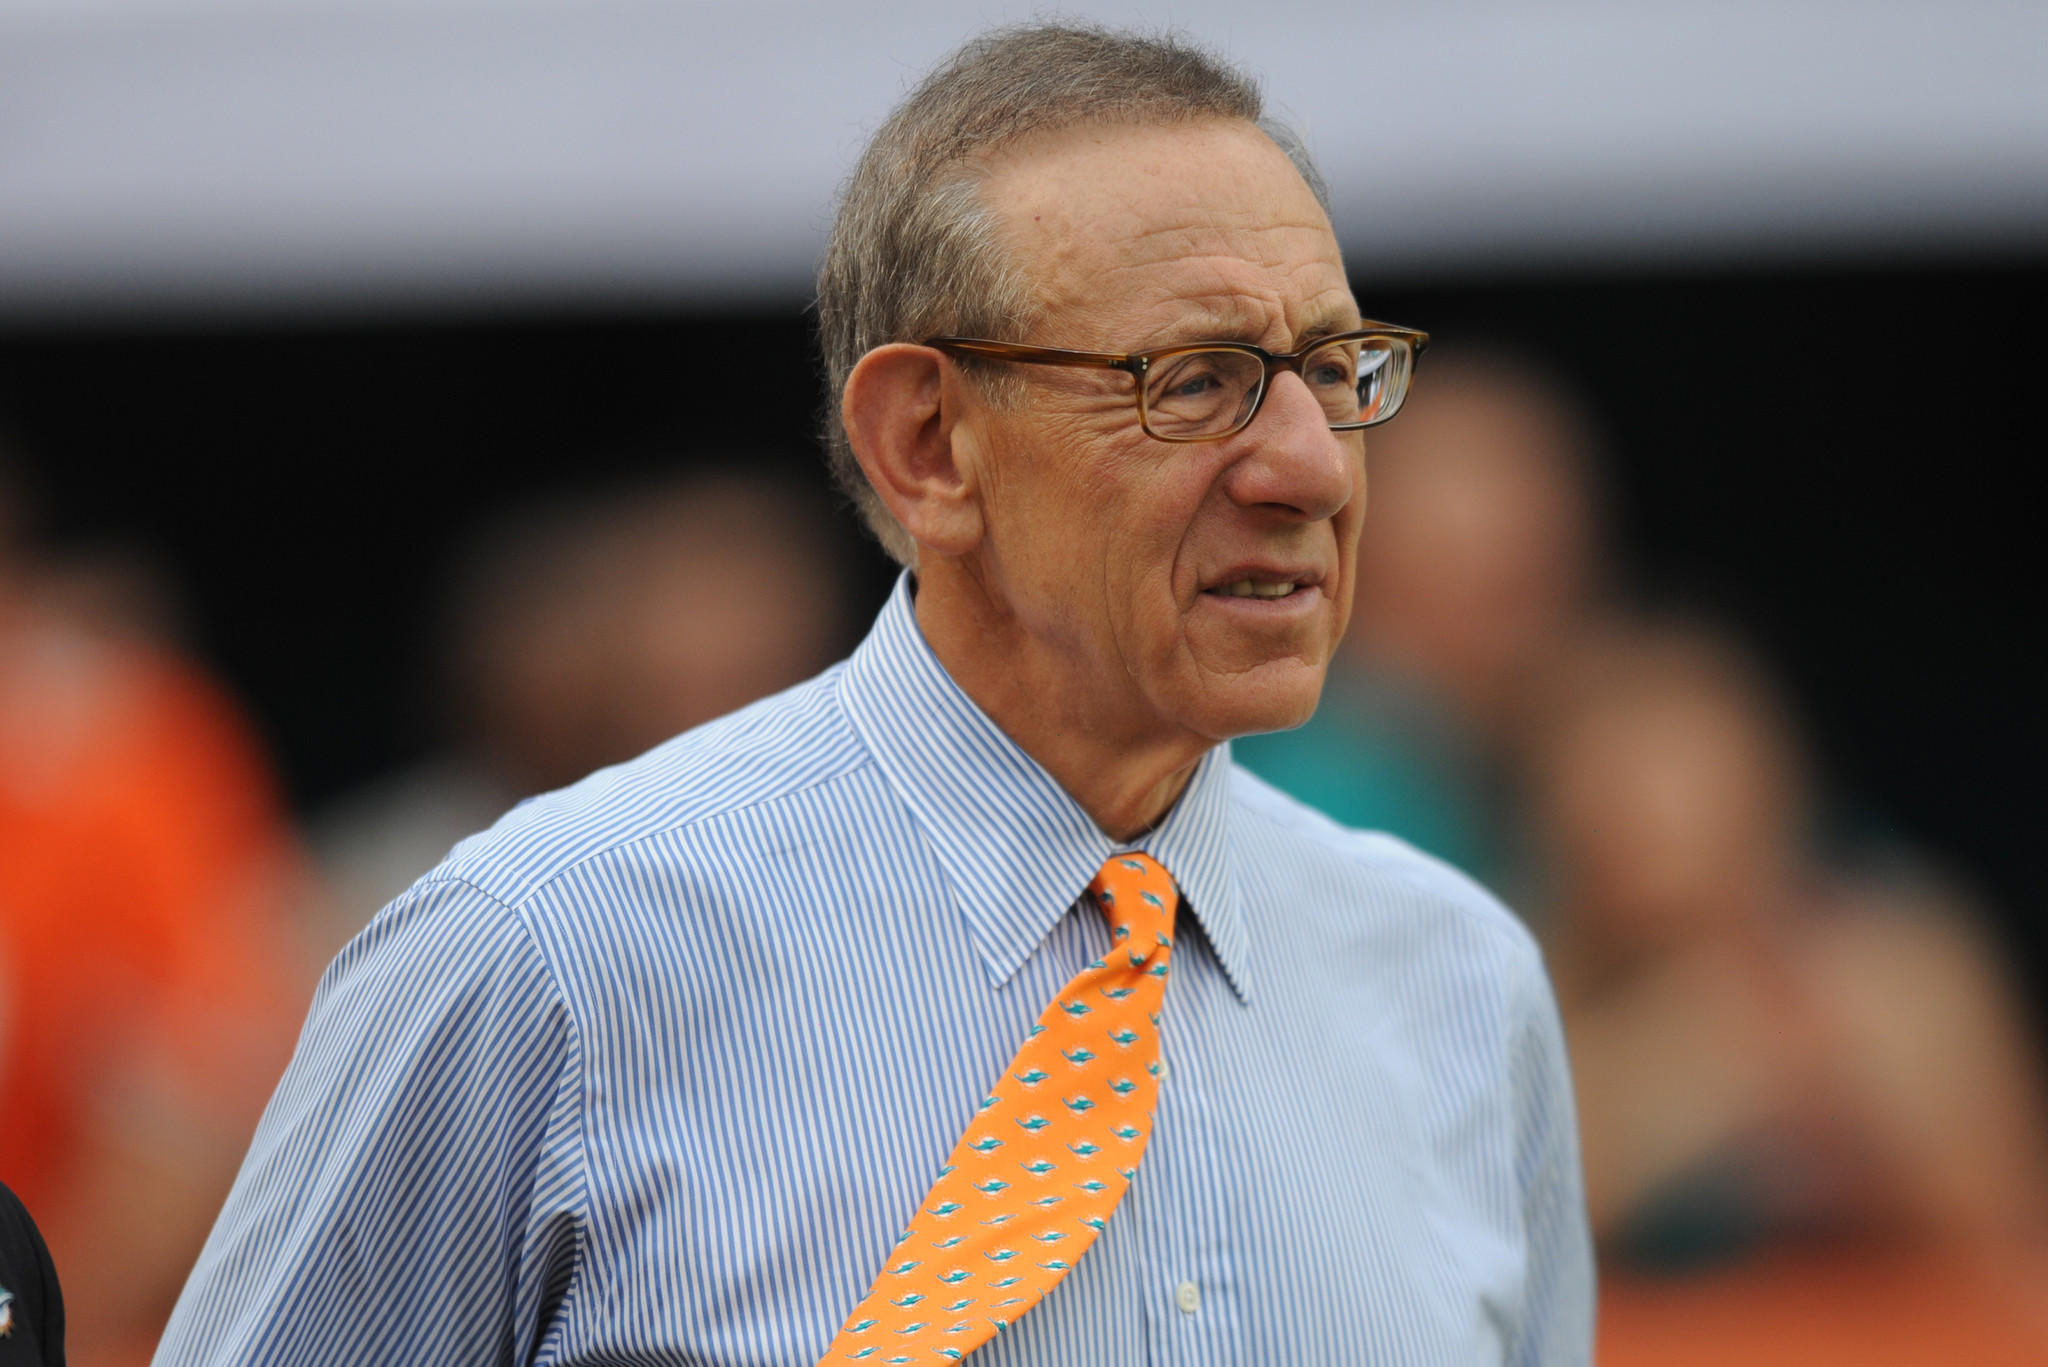 Miami Dolphins owner Stephen M. Ross looks on as the Jets defeat the Dolphins and knock them out of the playoffs.